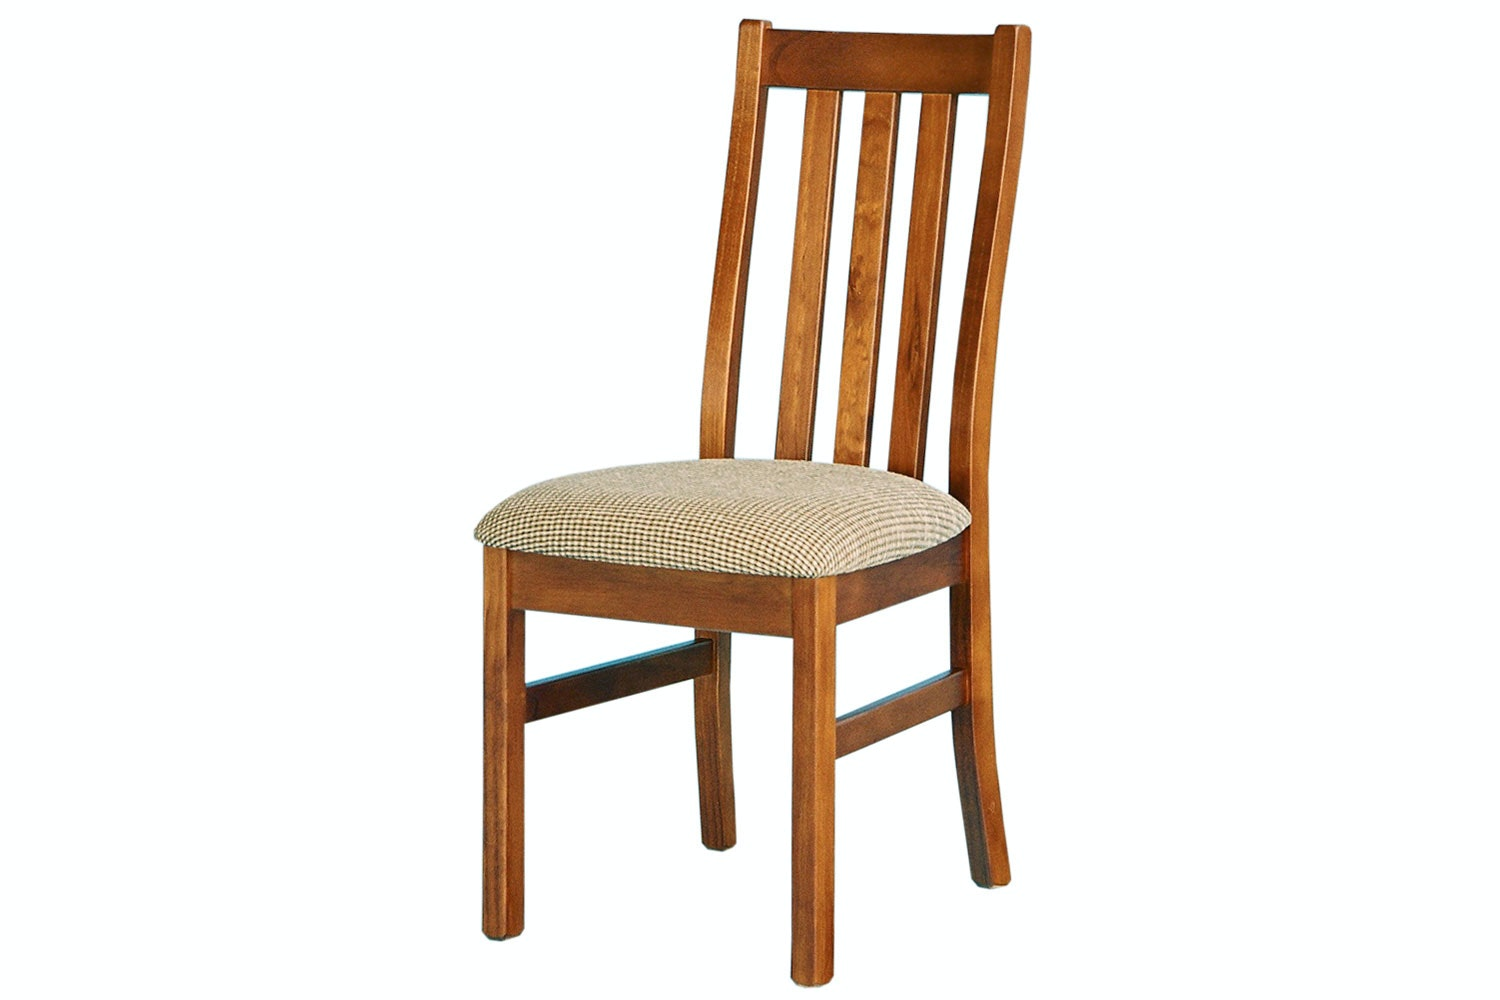 Ferngrove Dining Chair by Coastwood Furniture